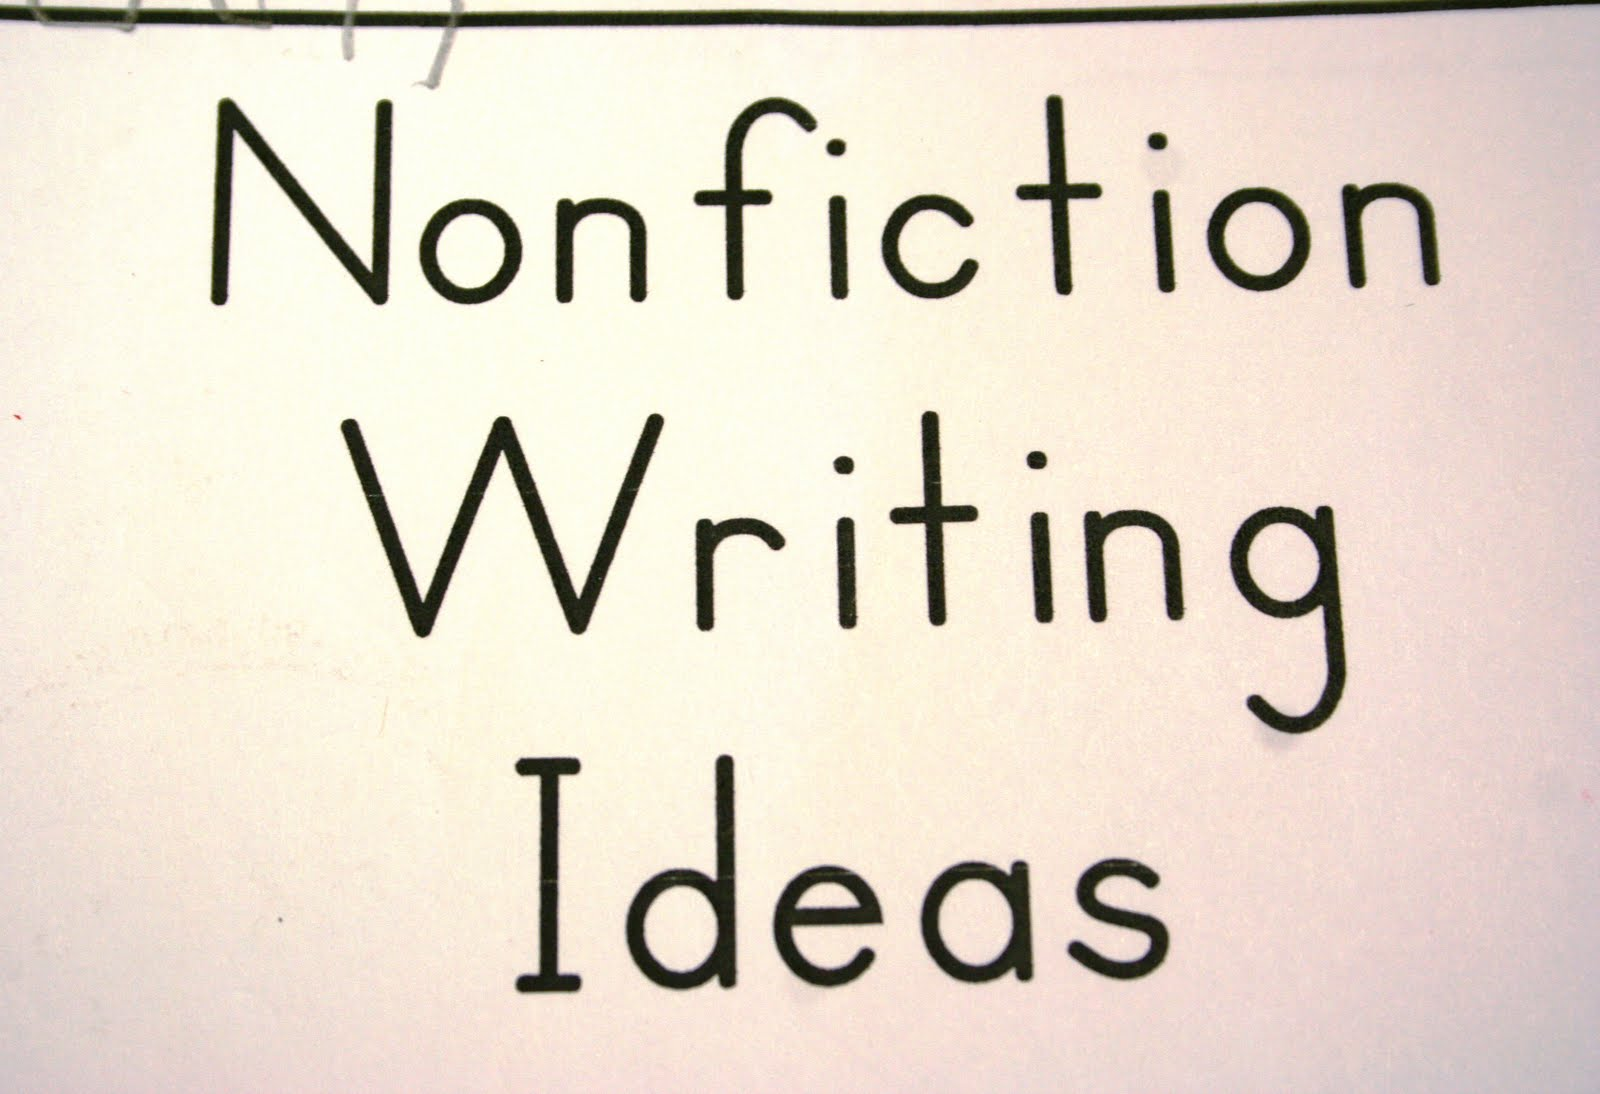 nonfiction writing prompts 1, 699 nonfiction writing prompts: questions galore for generating book, article & blog post ideas - kindle edition by dahlia valentine download it once and read it.